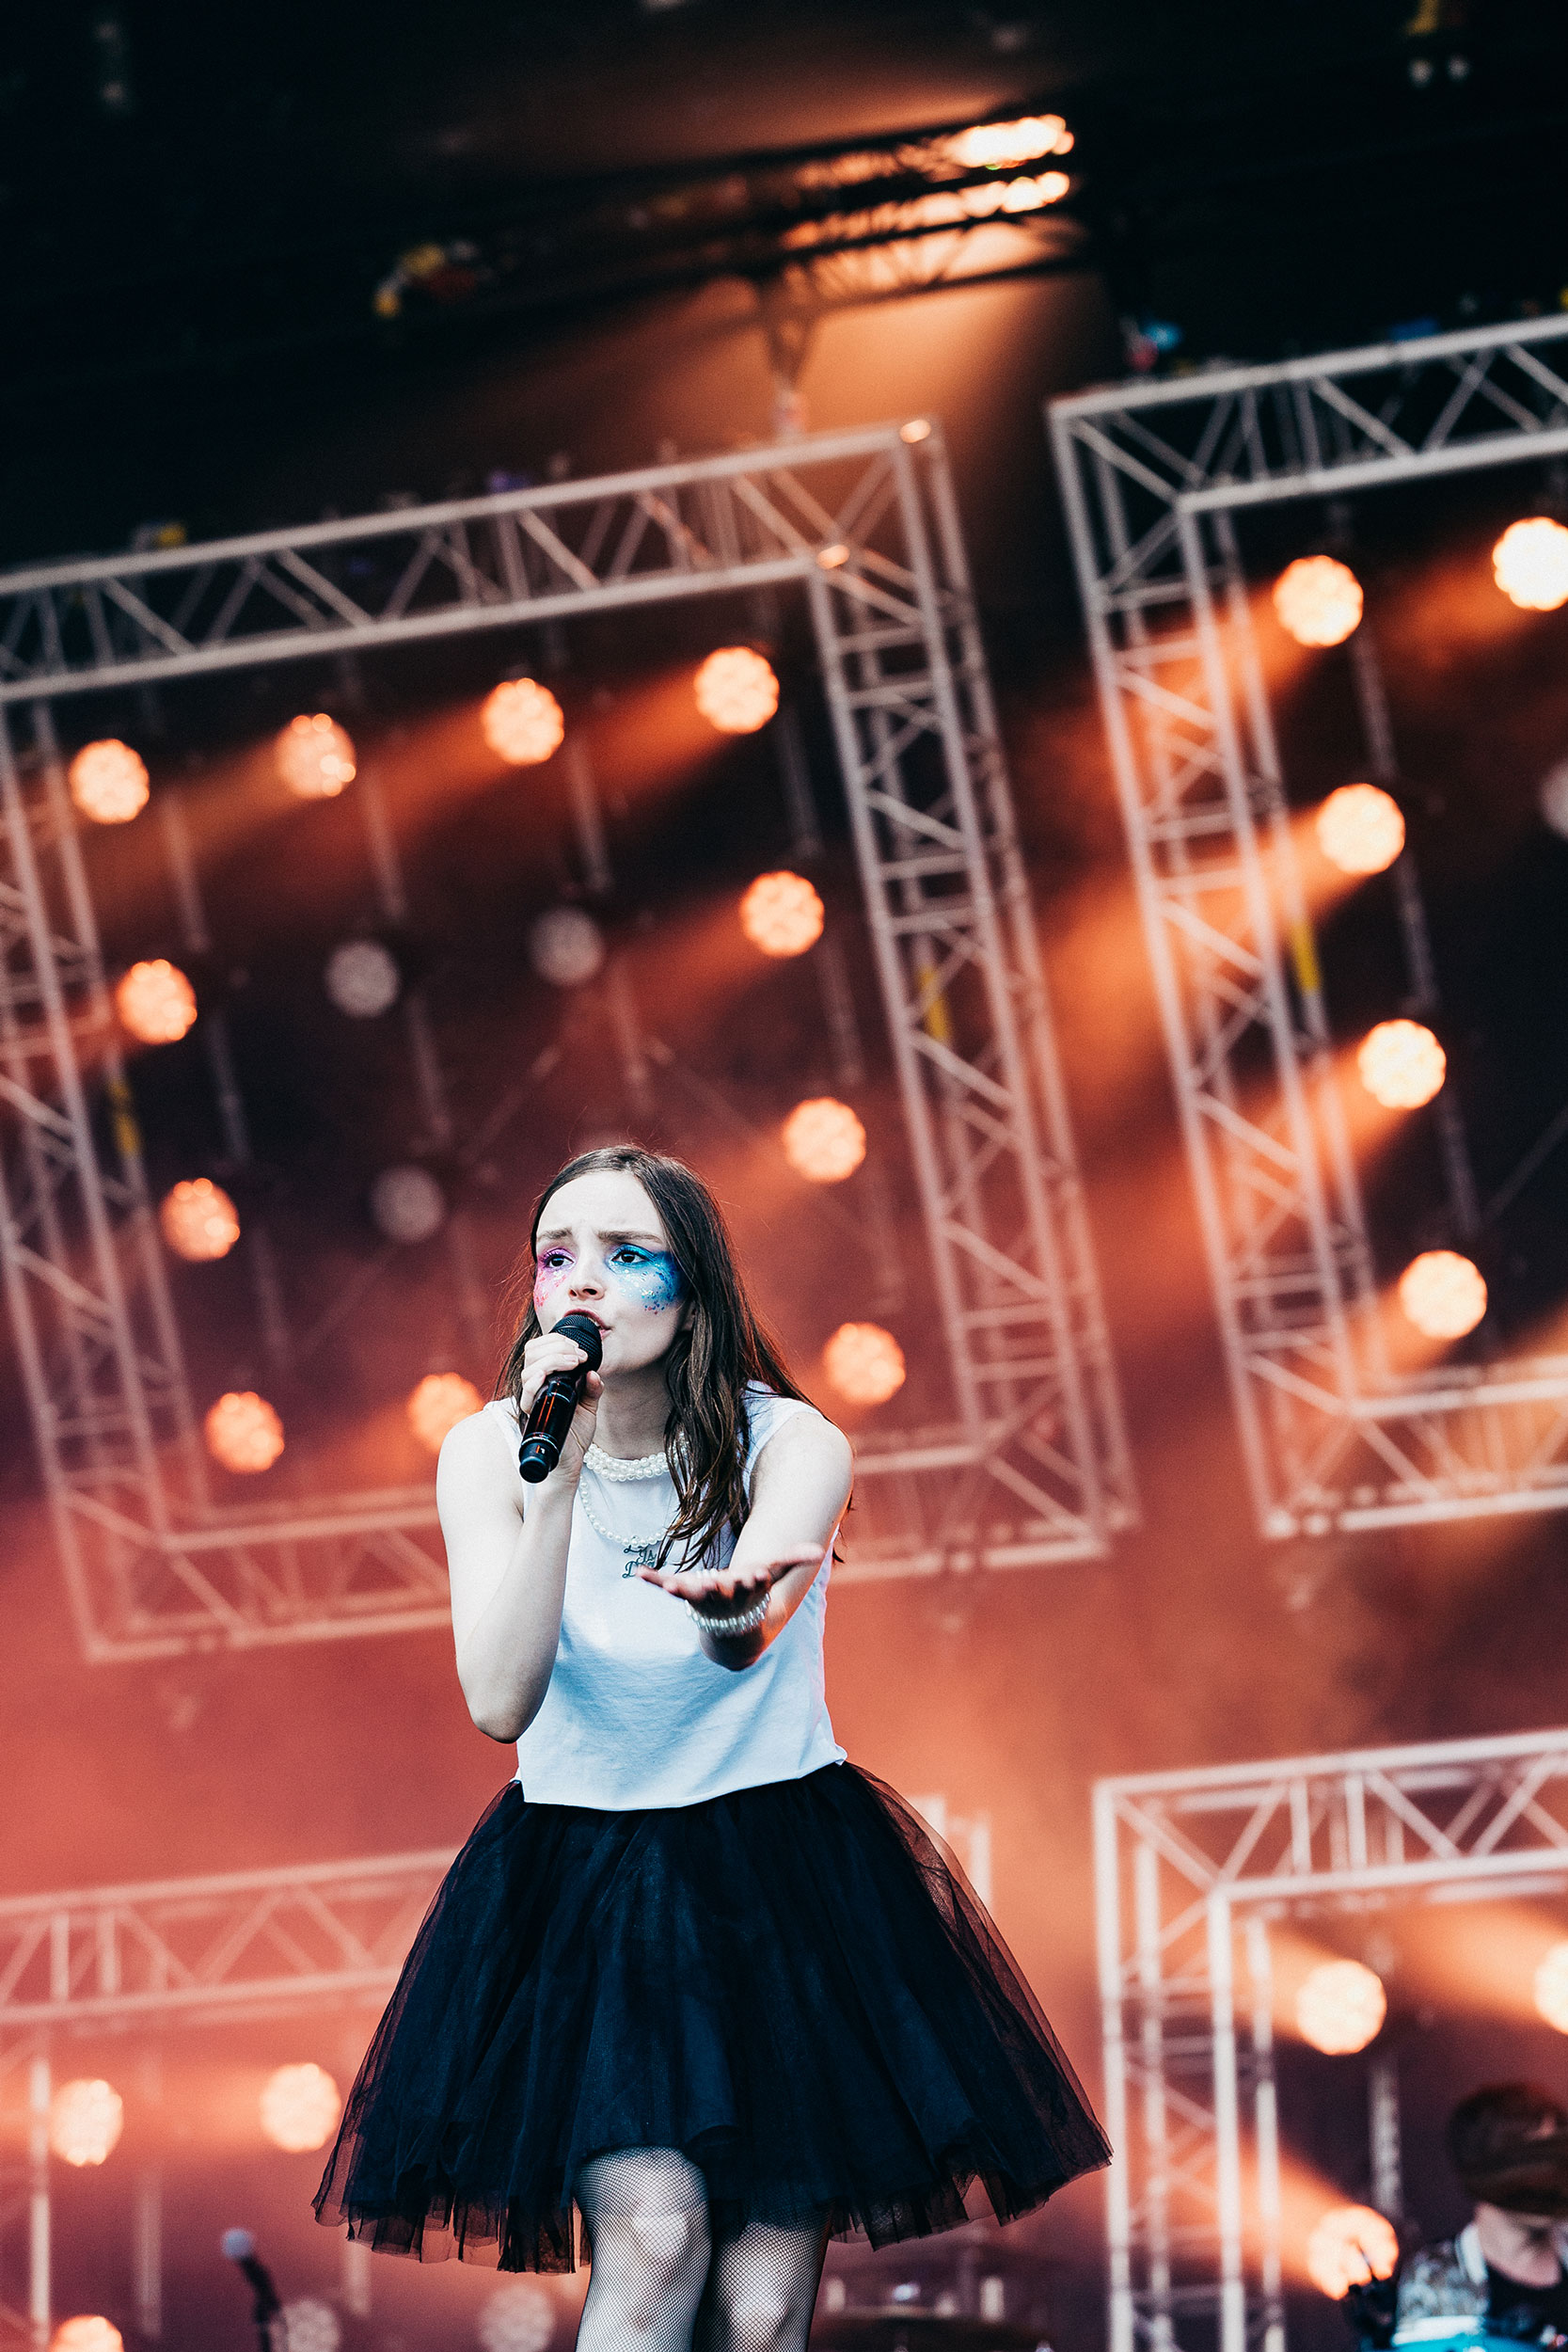 Citadel_150718_Chvrches-(28-of-32).jpg